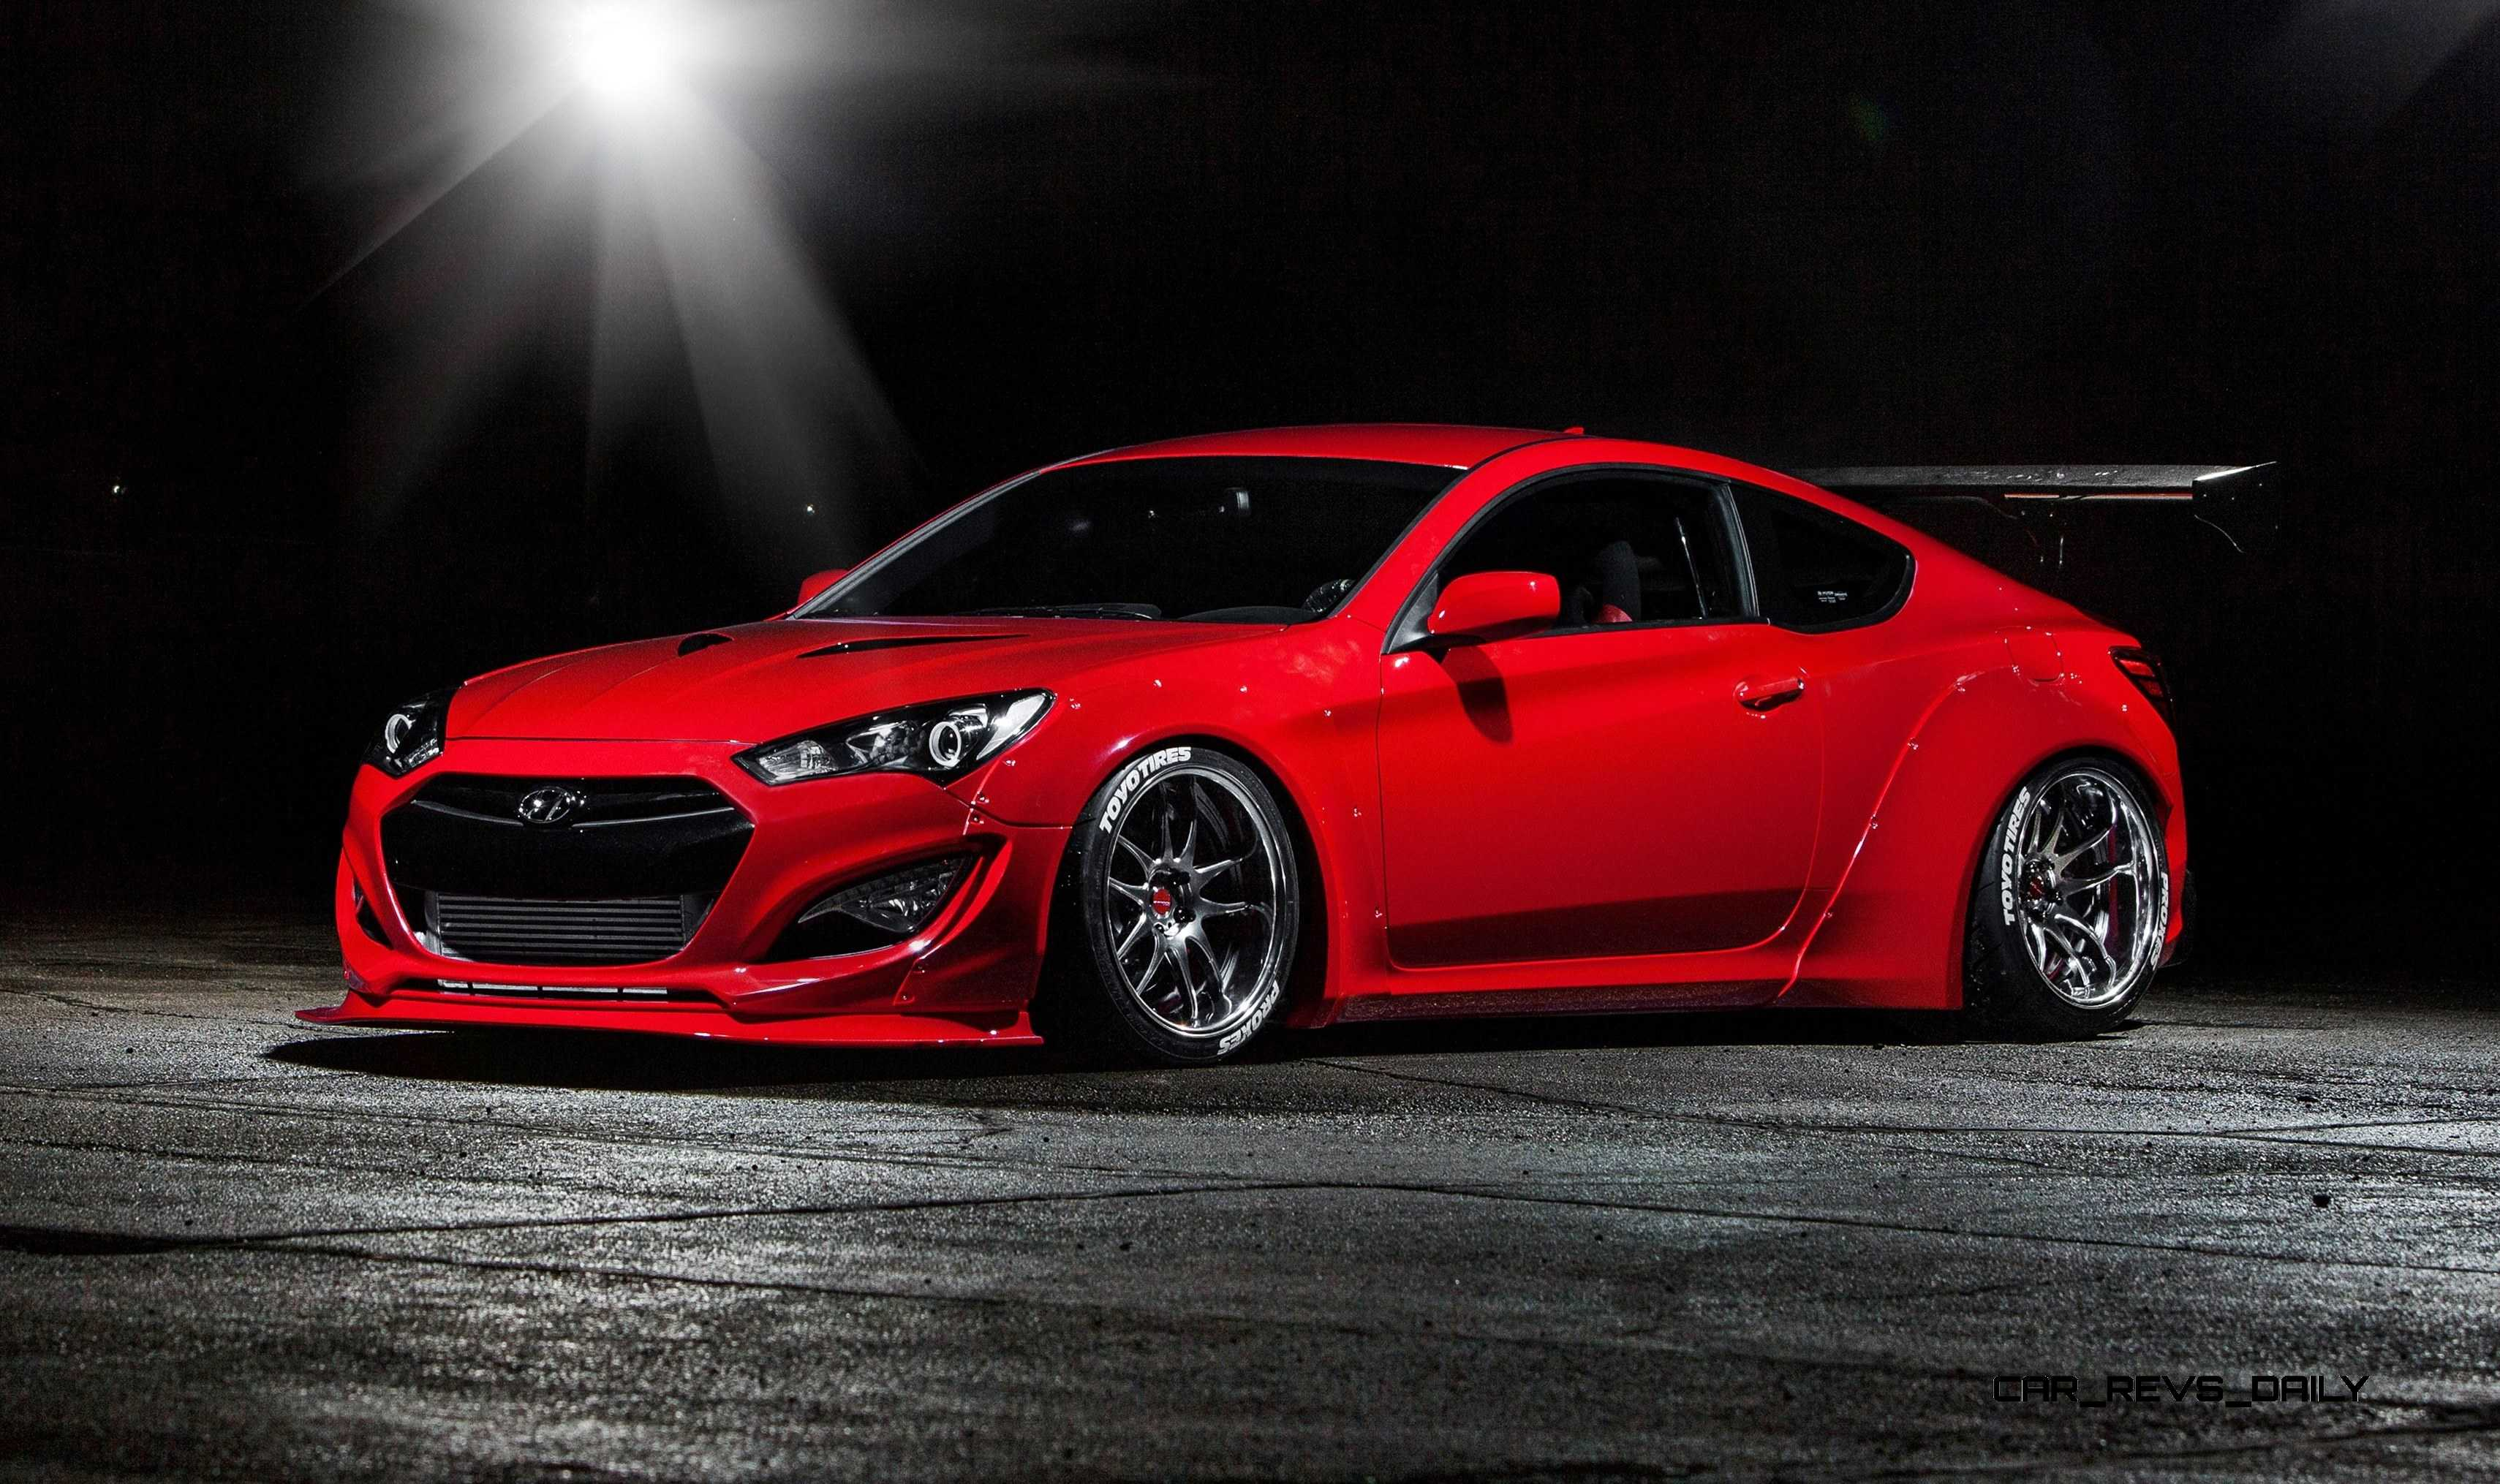 Best Of Sema 2014 Hyundai Genesis Coupe By Bloodtype Racing